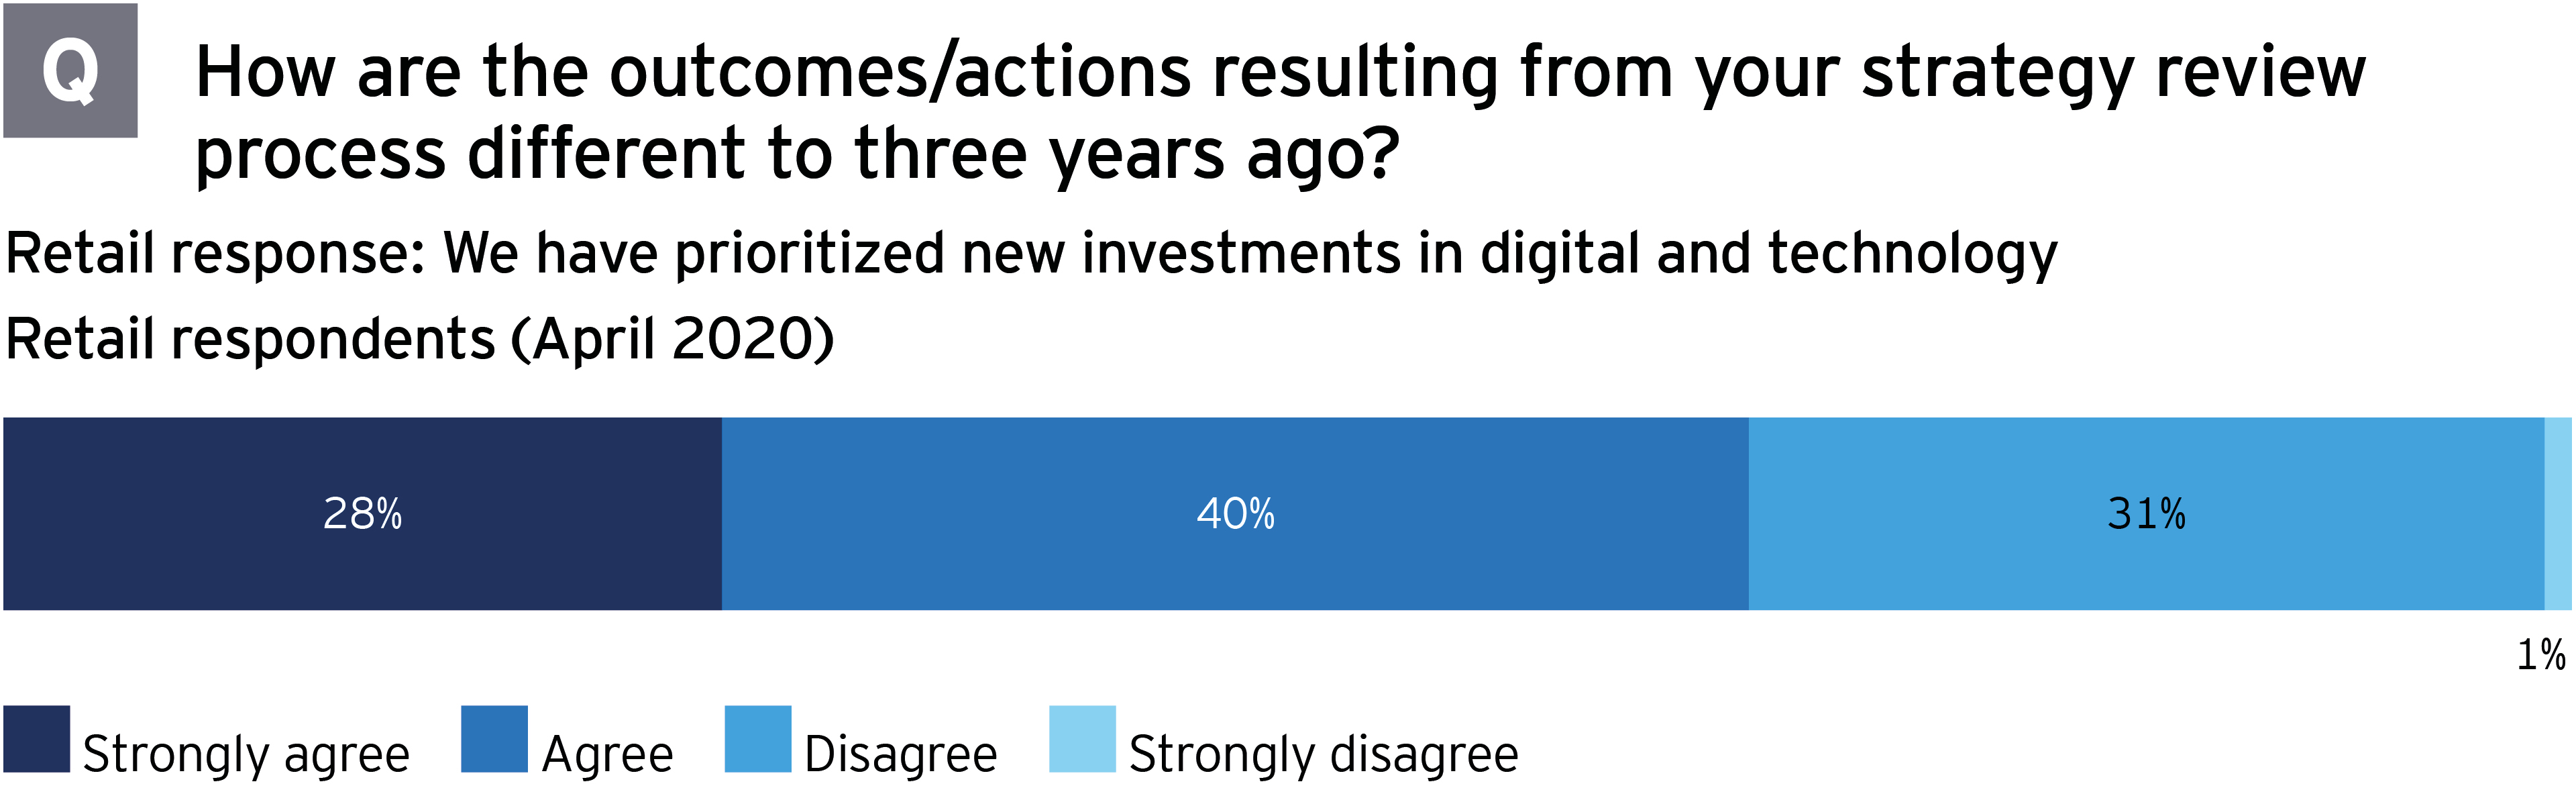 M&A survey how are strategy review actions different than 3 years ago